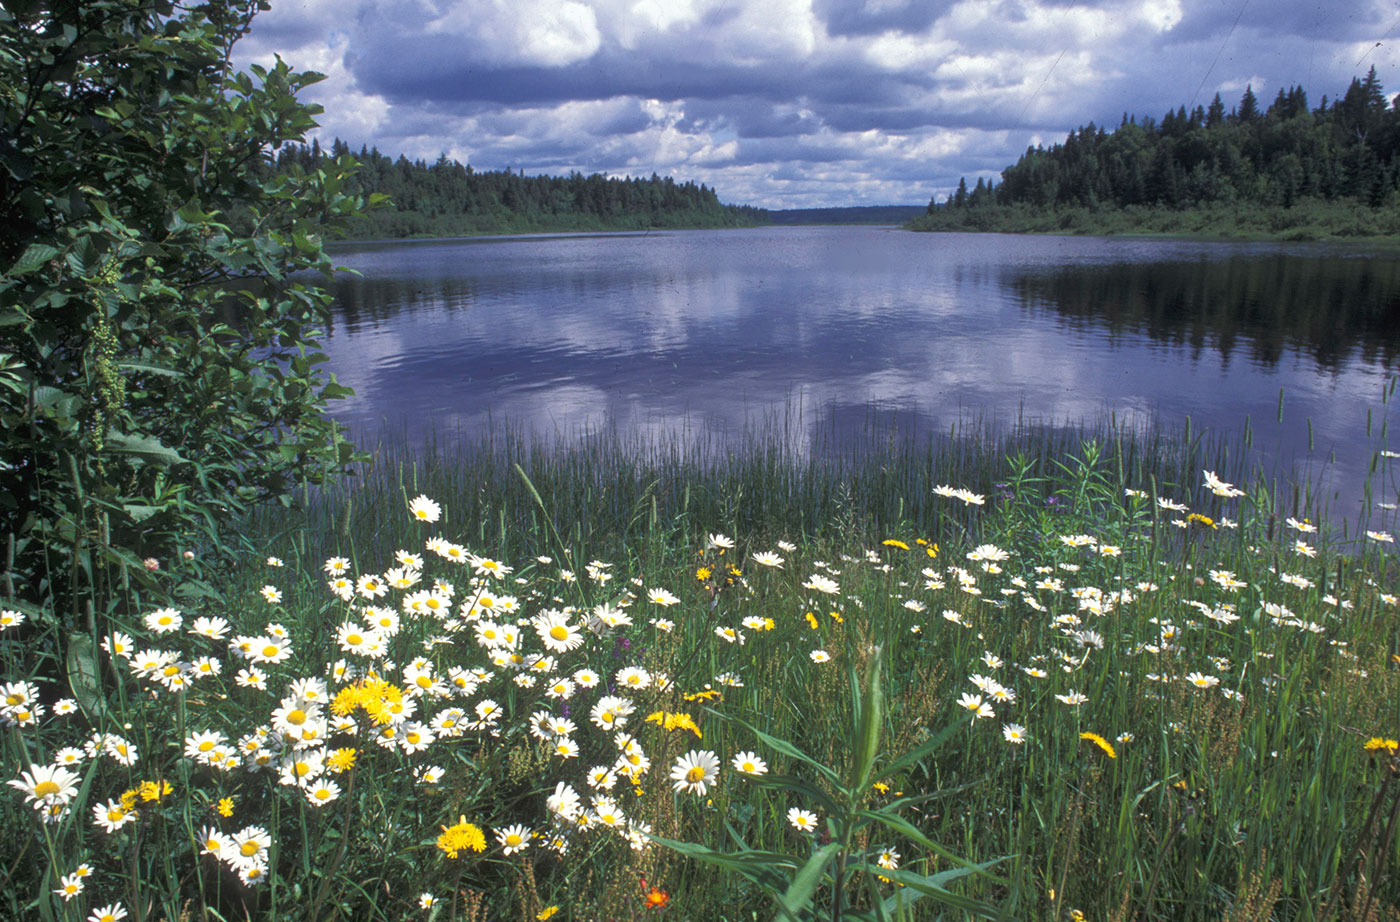 Daisies along Allagash Wilderness Waterway